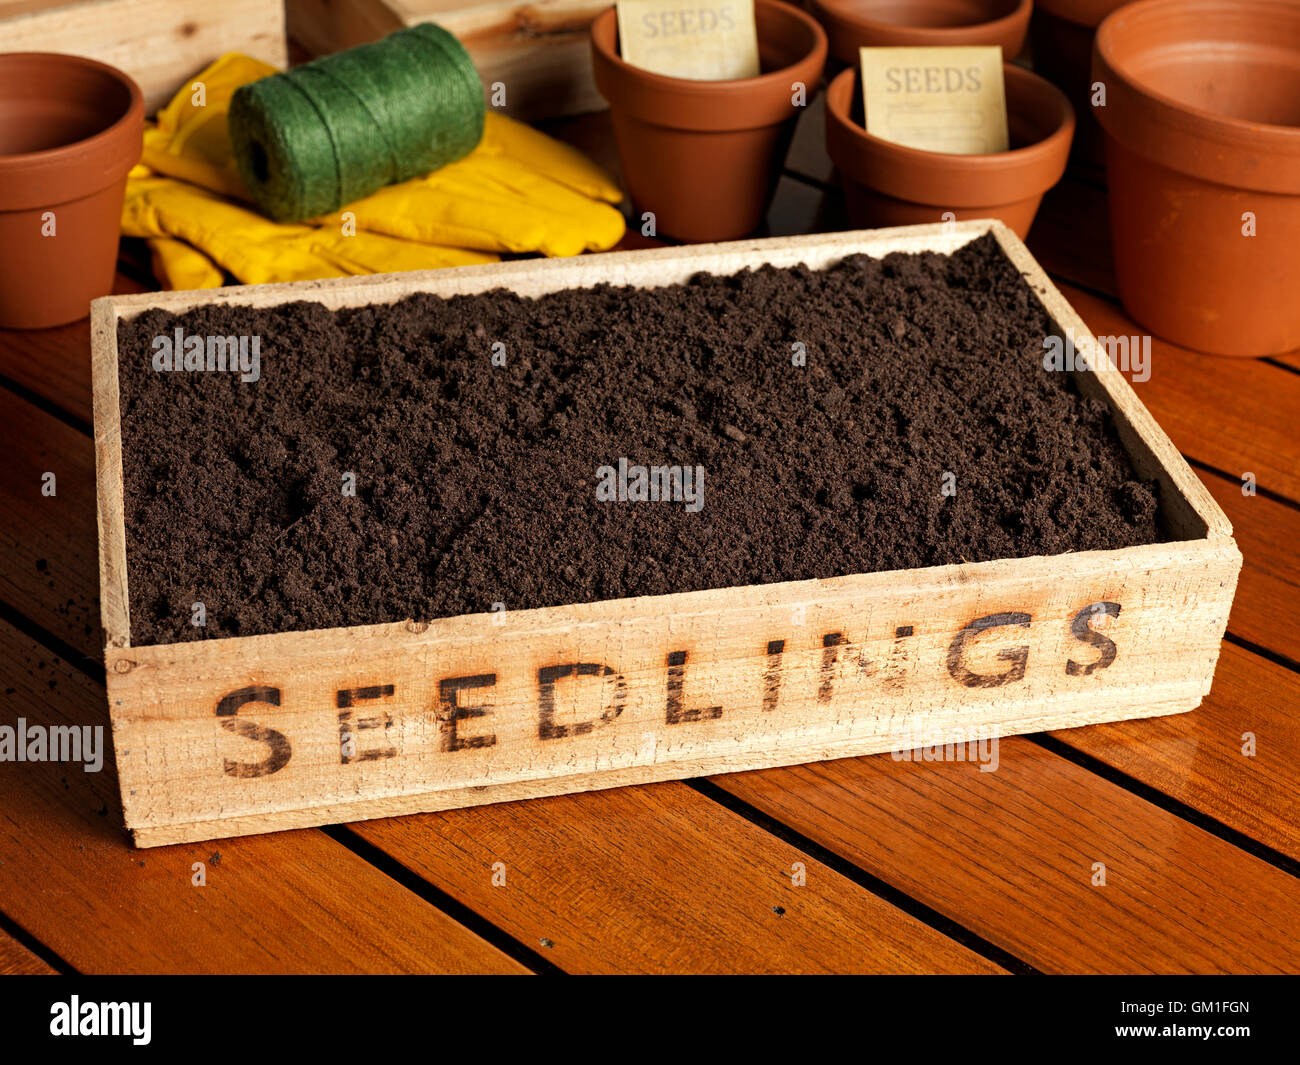 seedling tray filled with soil with a gardening background - Stock Image